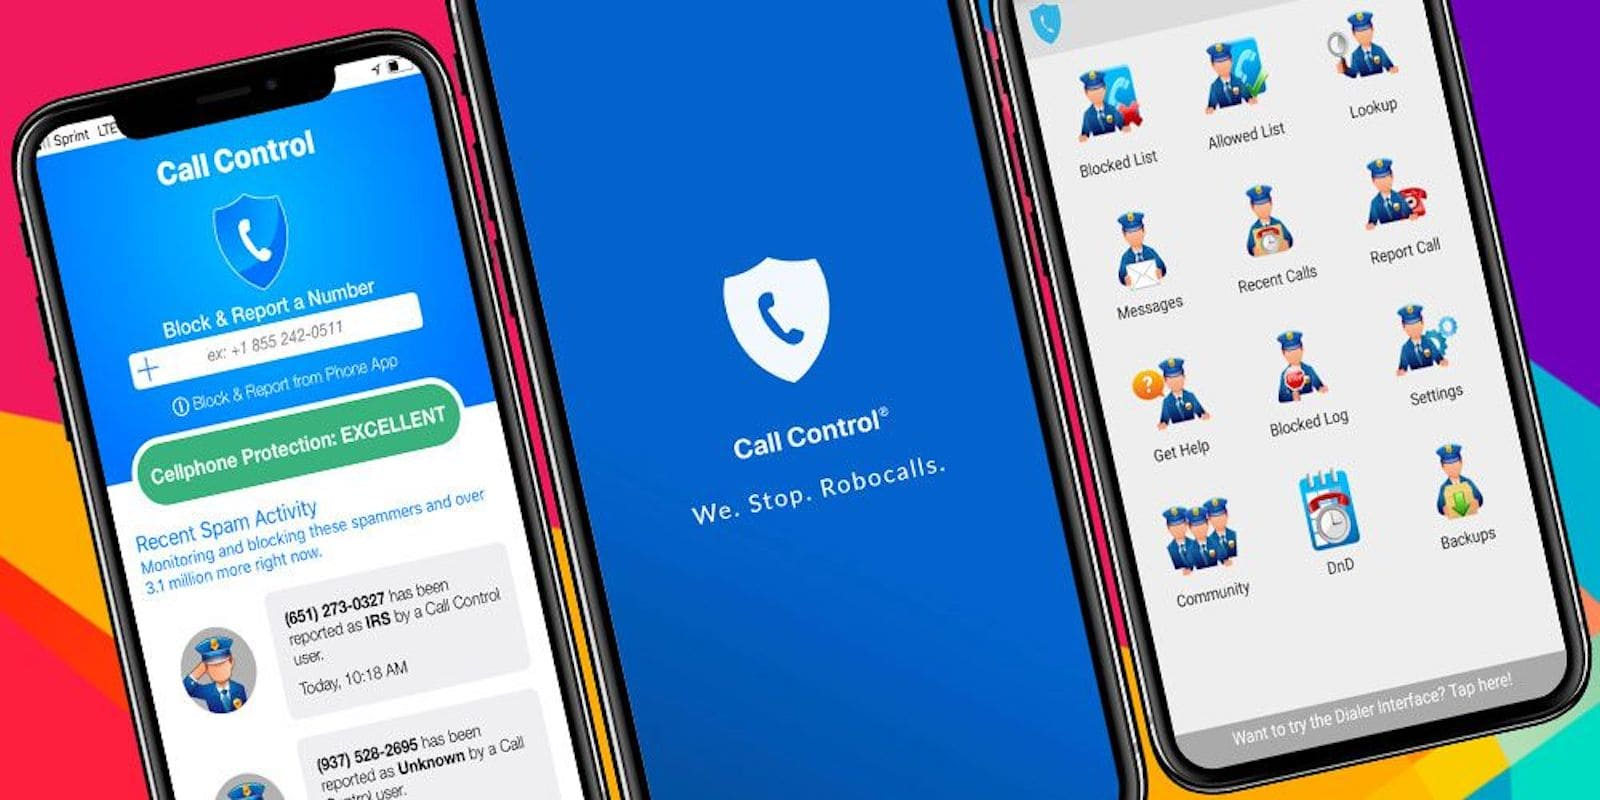 This app uses a community database of spam and scam callers to help keep them from getting through.